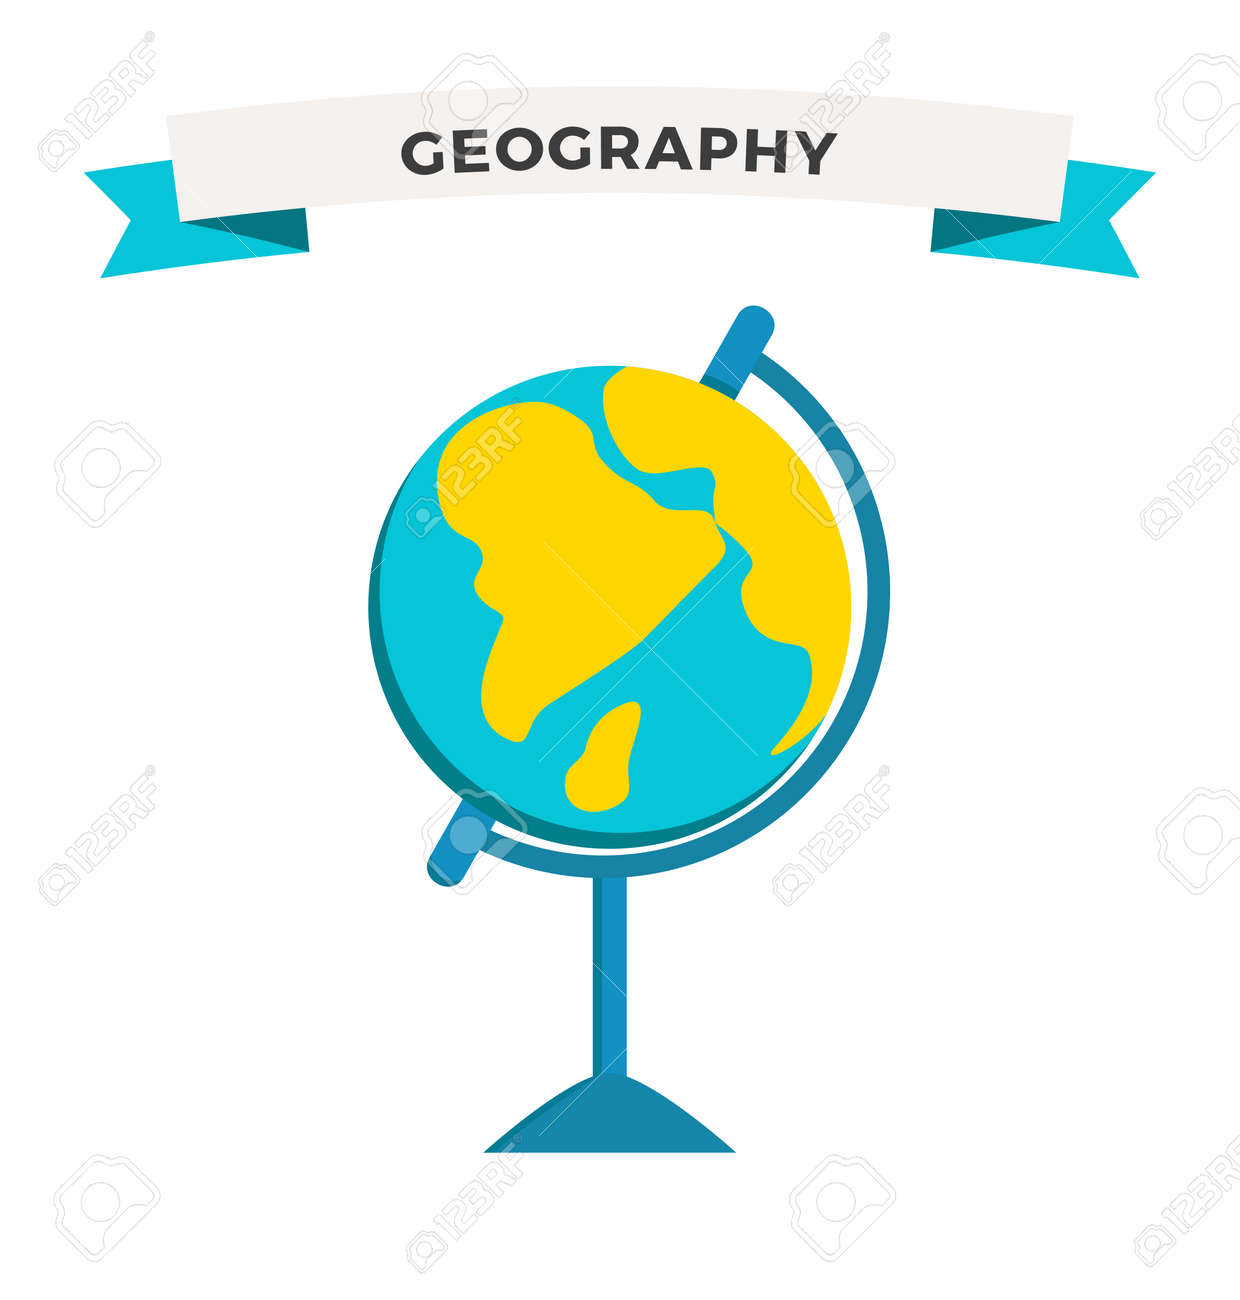 World globe school icon vector education globe earth school symbol vector world globe school icon vector education globe earth school symbol globe vector map globe earth silhouette globe background geography world gumiabroncs Image collections